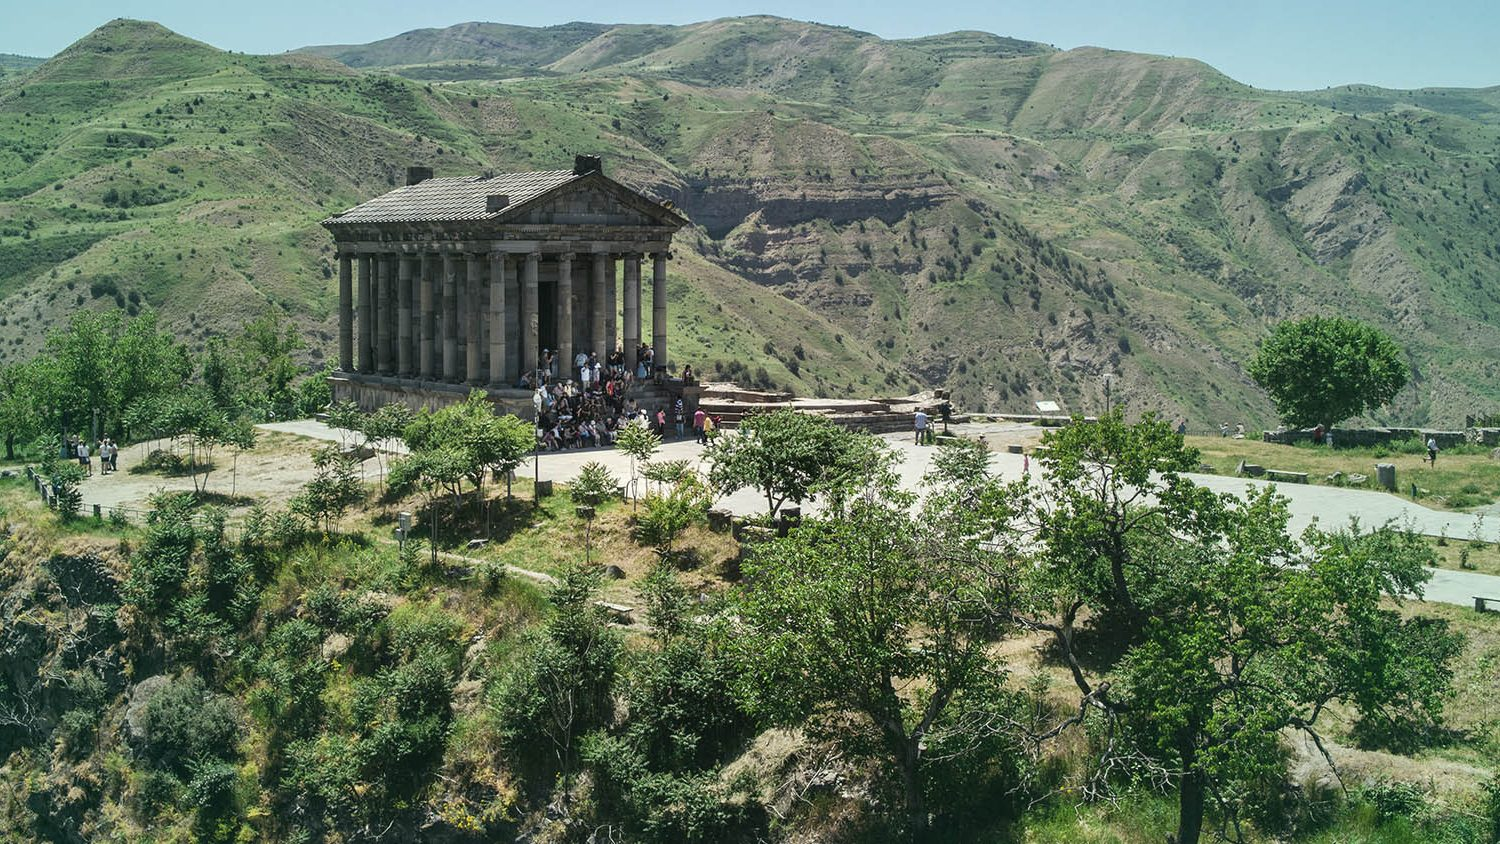 One-day tour to Garni and Geghard one day tour to Garni-Geghard family trip to Armenia one-day tours in Armenia